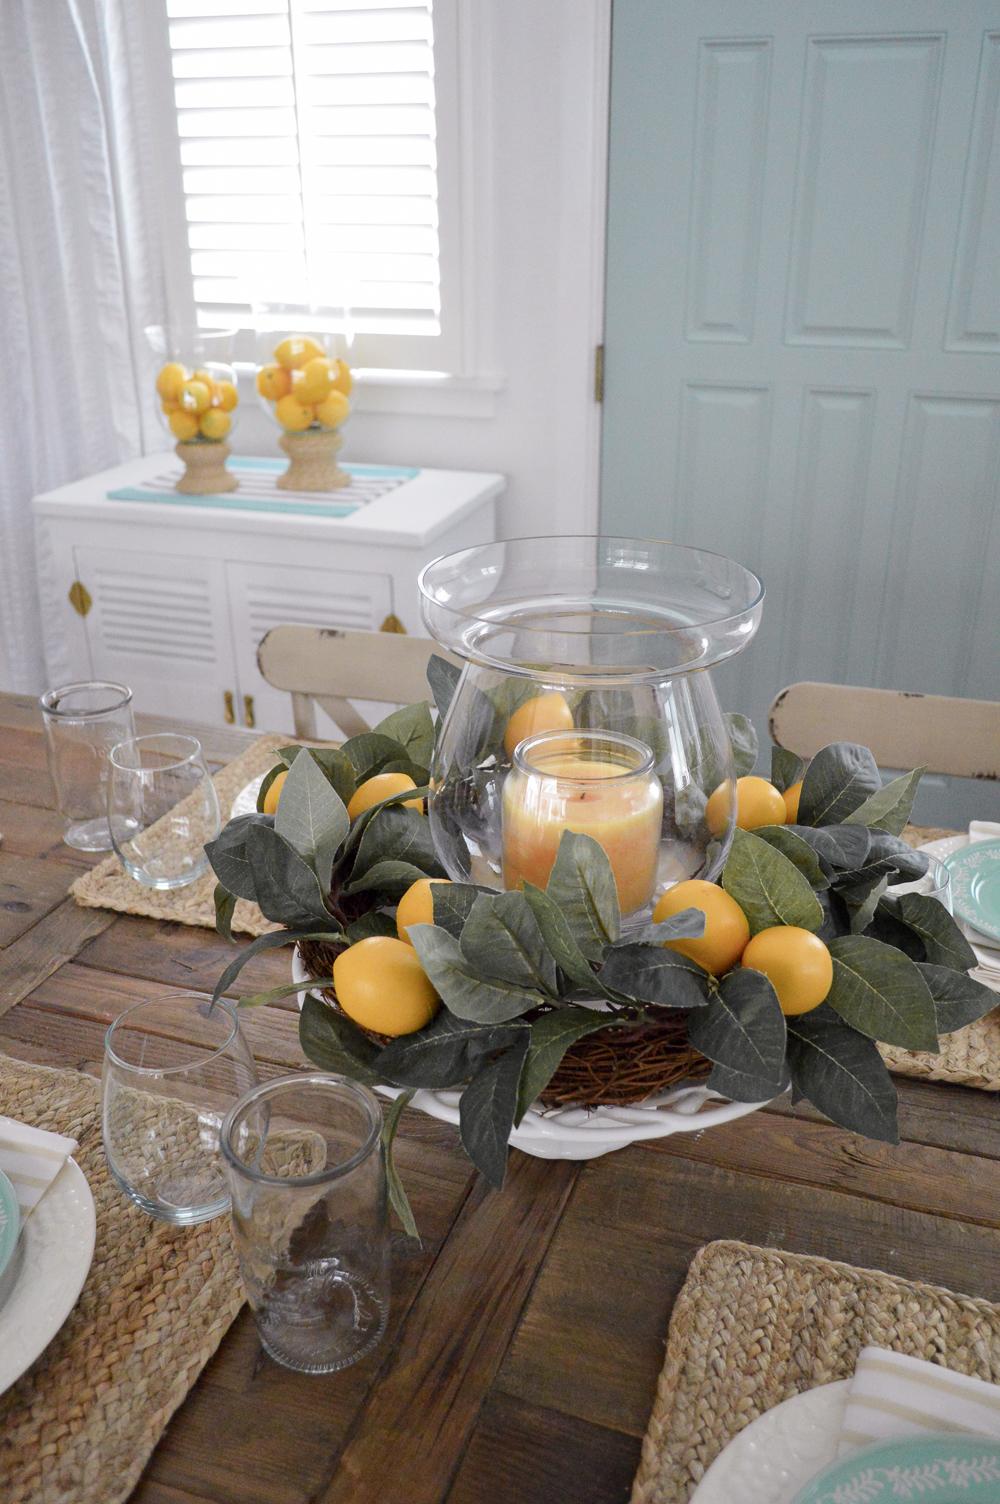 Easy Lemon Centerpiece Decorating Ideas